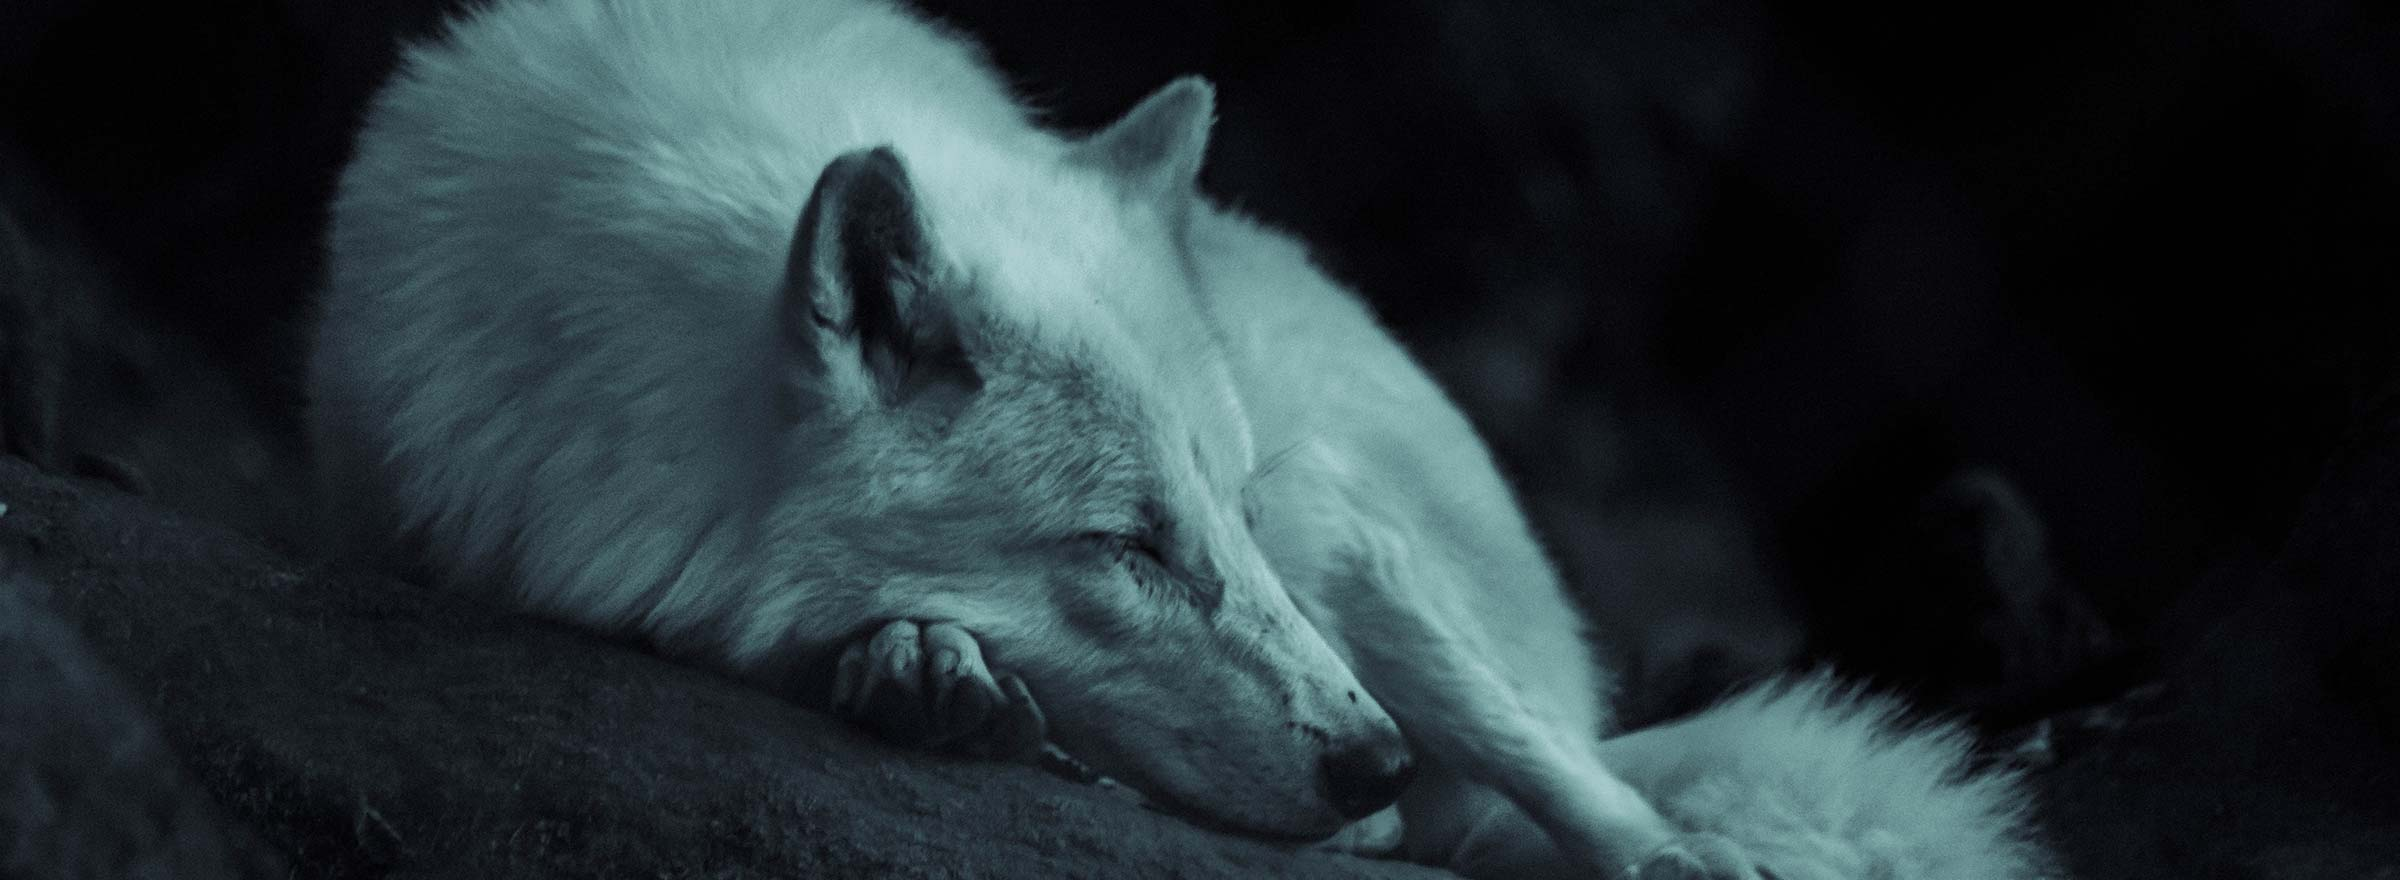 a wolf sleeping peacefully, representing The Wild Animal Sanctuary's nonprofit digital storytelling